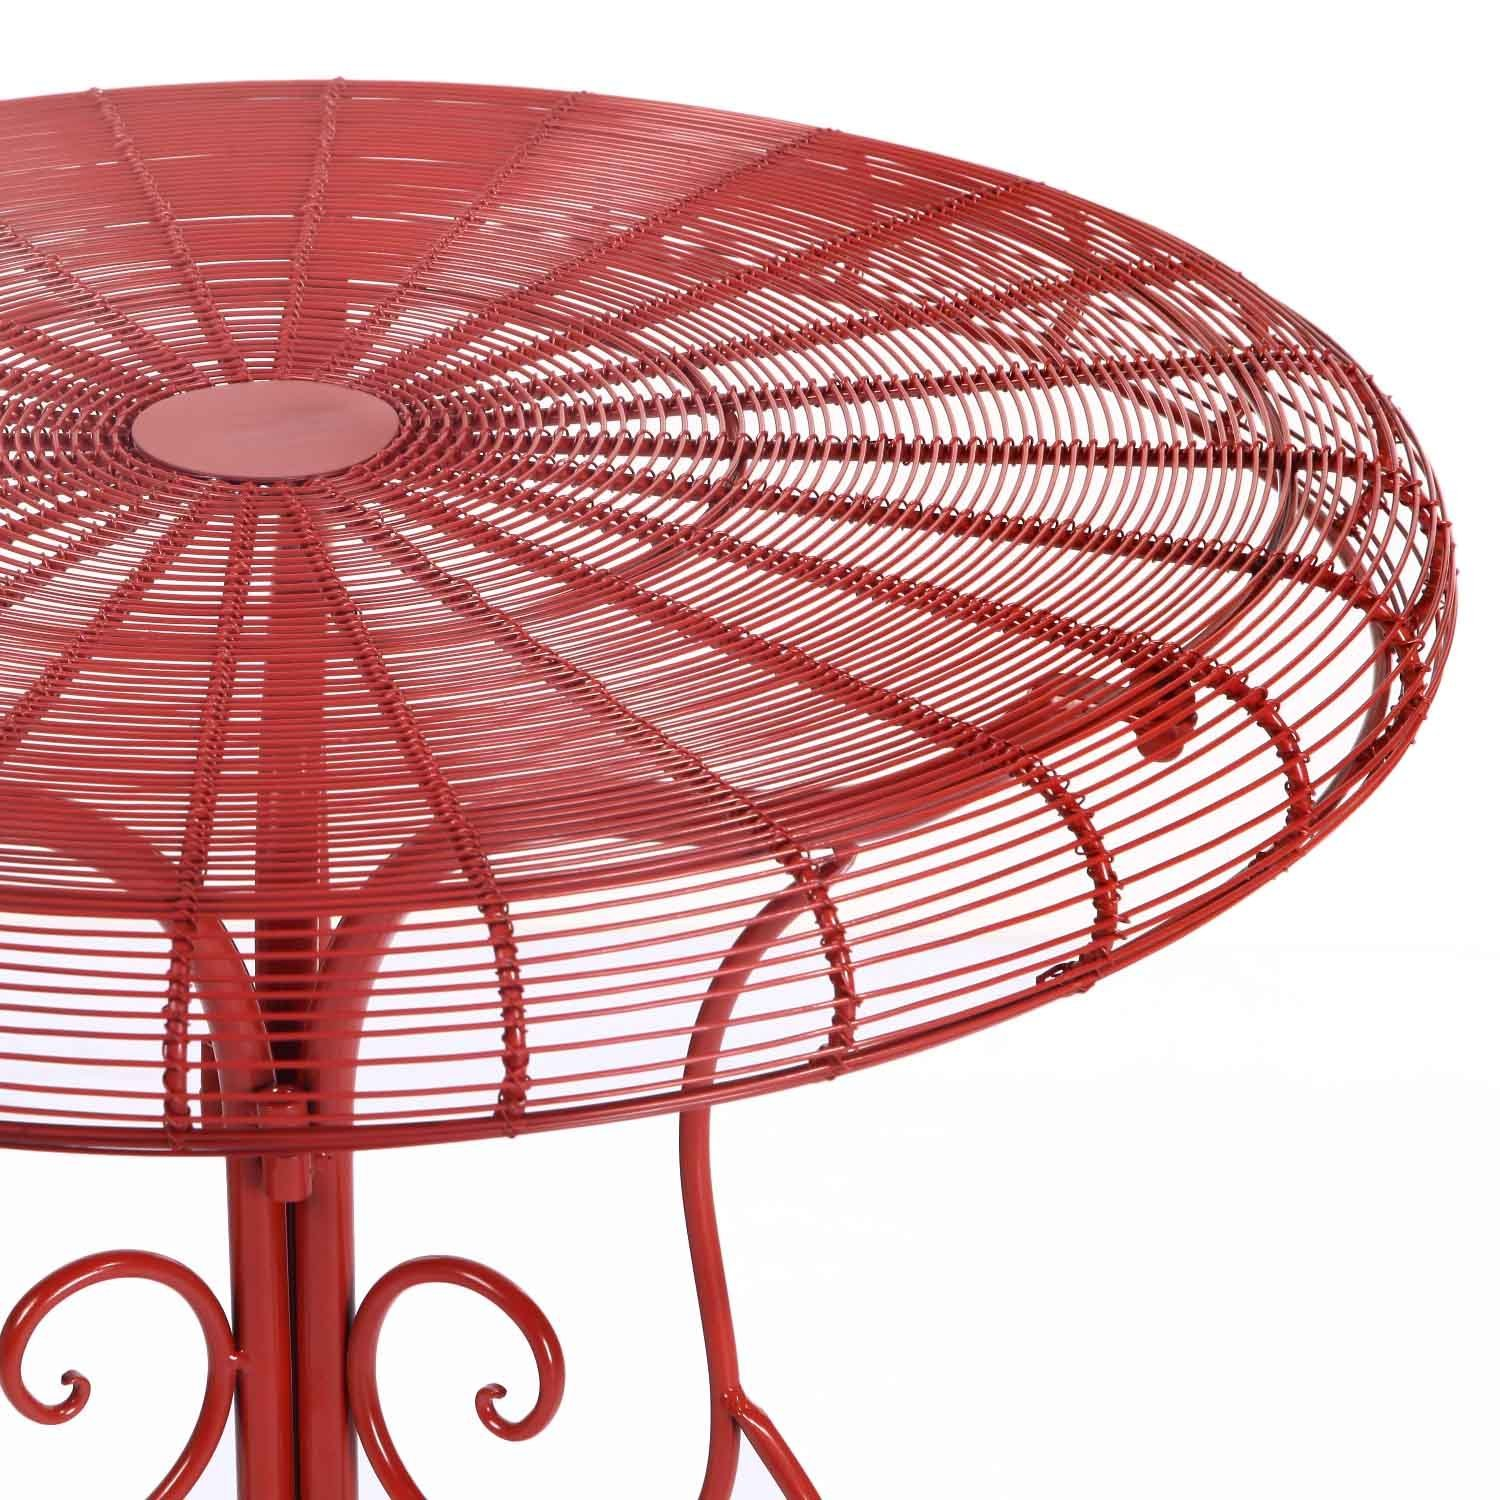 adeco accent round decorative end side table iron red egg chair bunnings furniture choice dining room glass top tables small wine skinny sofa inch blue white porcelain lamp ikea